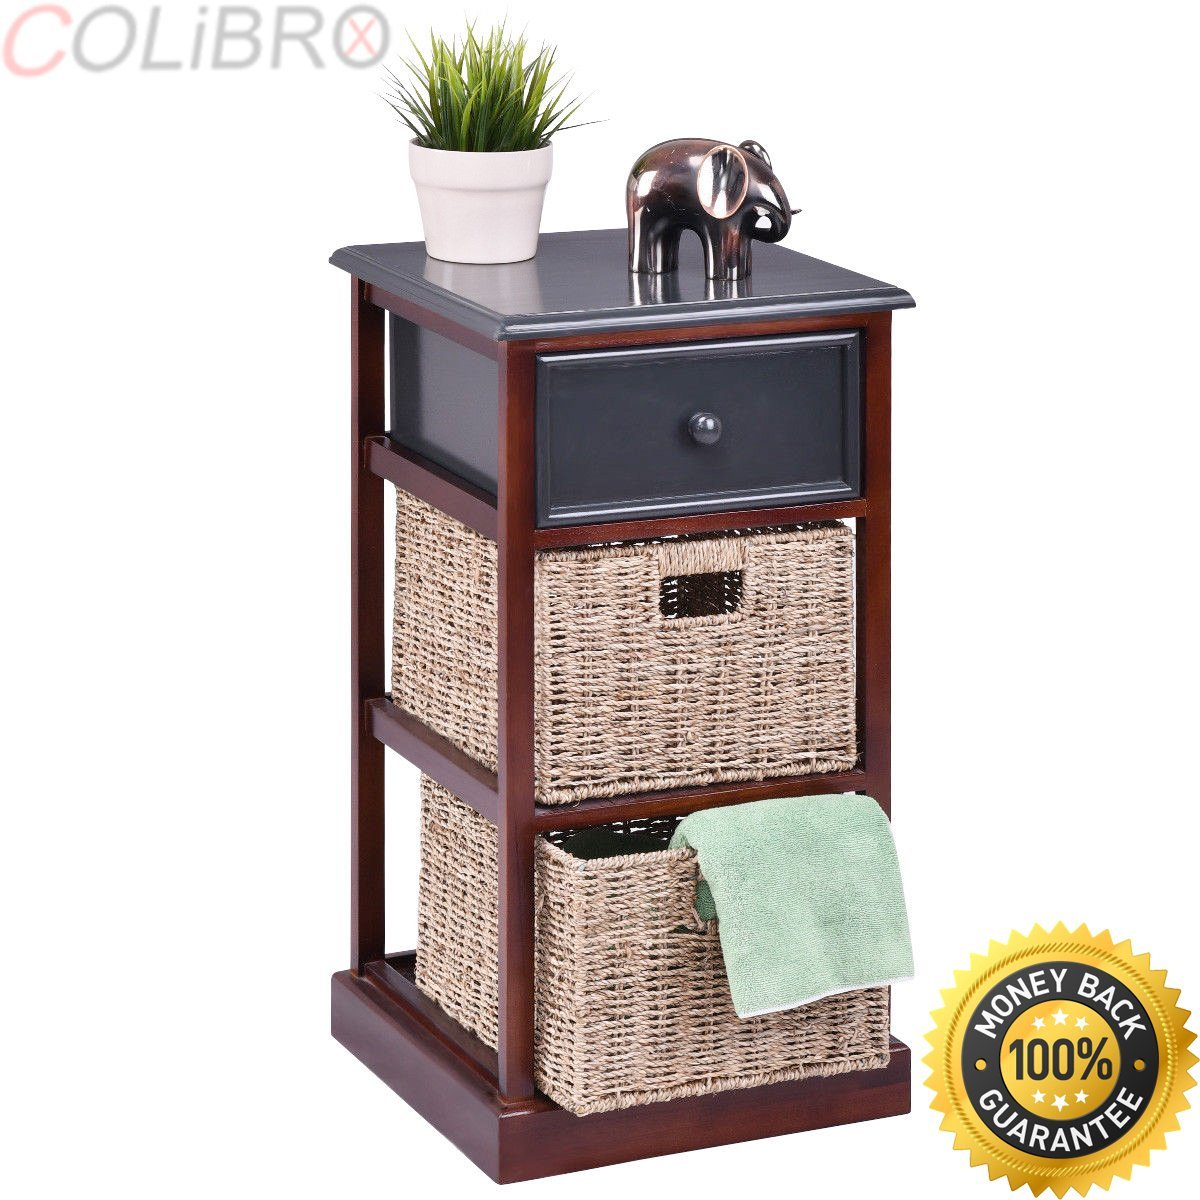 COLIBROX--2PCS 3 Tier Wood Nightstand Drawer 2 Basket Bedside End Table Organizer Brown.3 drawer nightstand.nightstands clearance.south shore furniture 3 drawer nightstand.amazon nightstands.